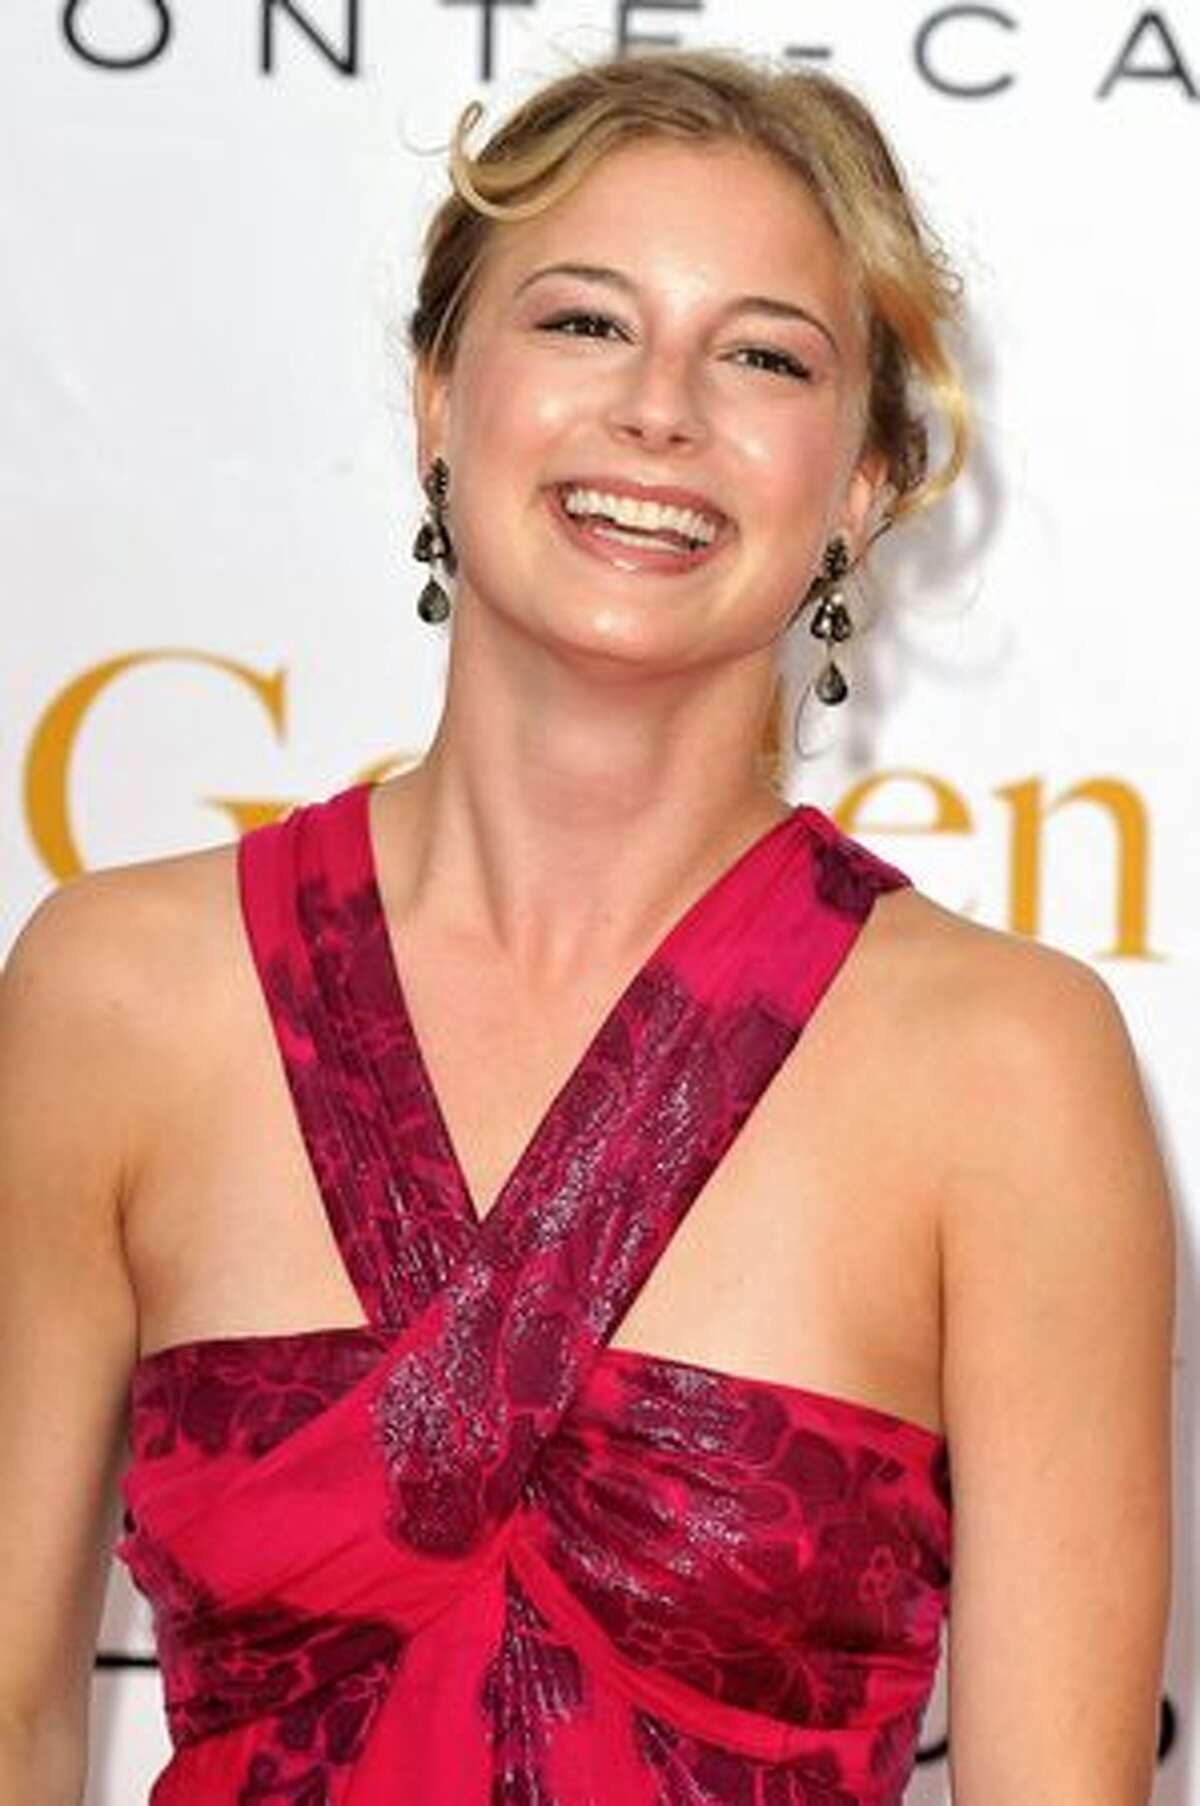 Emily VanCamp , 24. Native of Ontario with a current role in ABC's